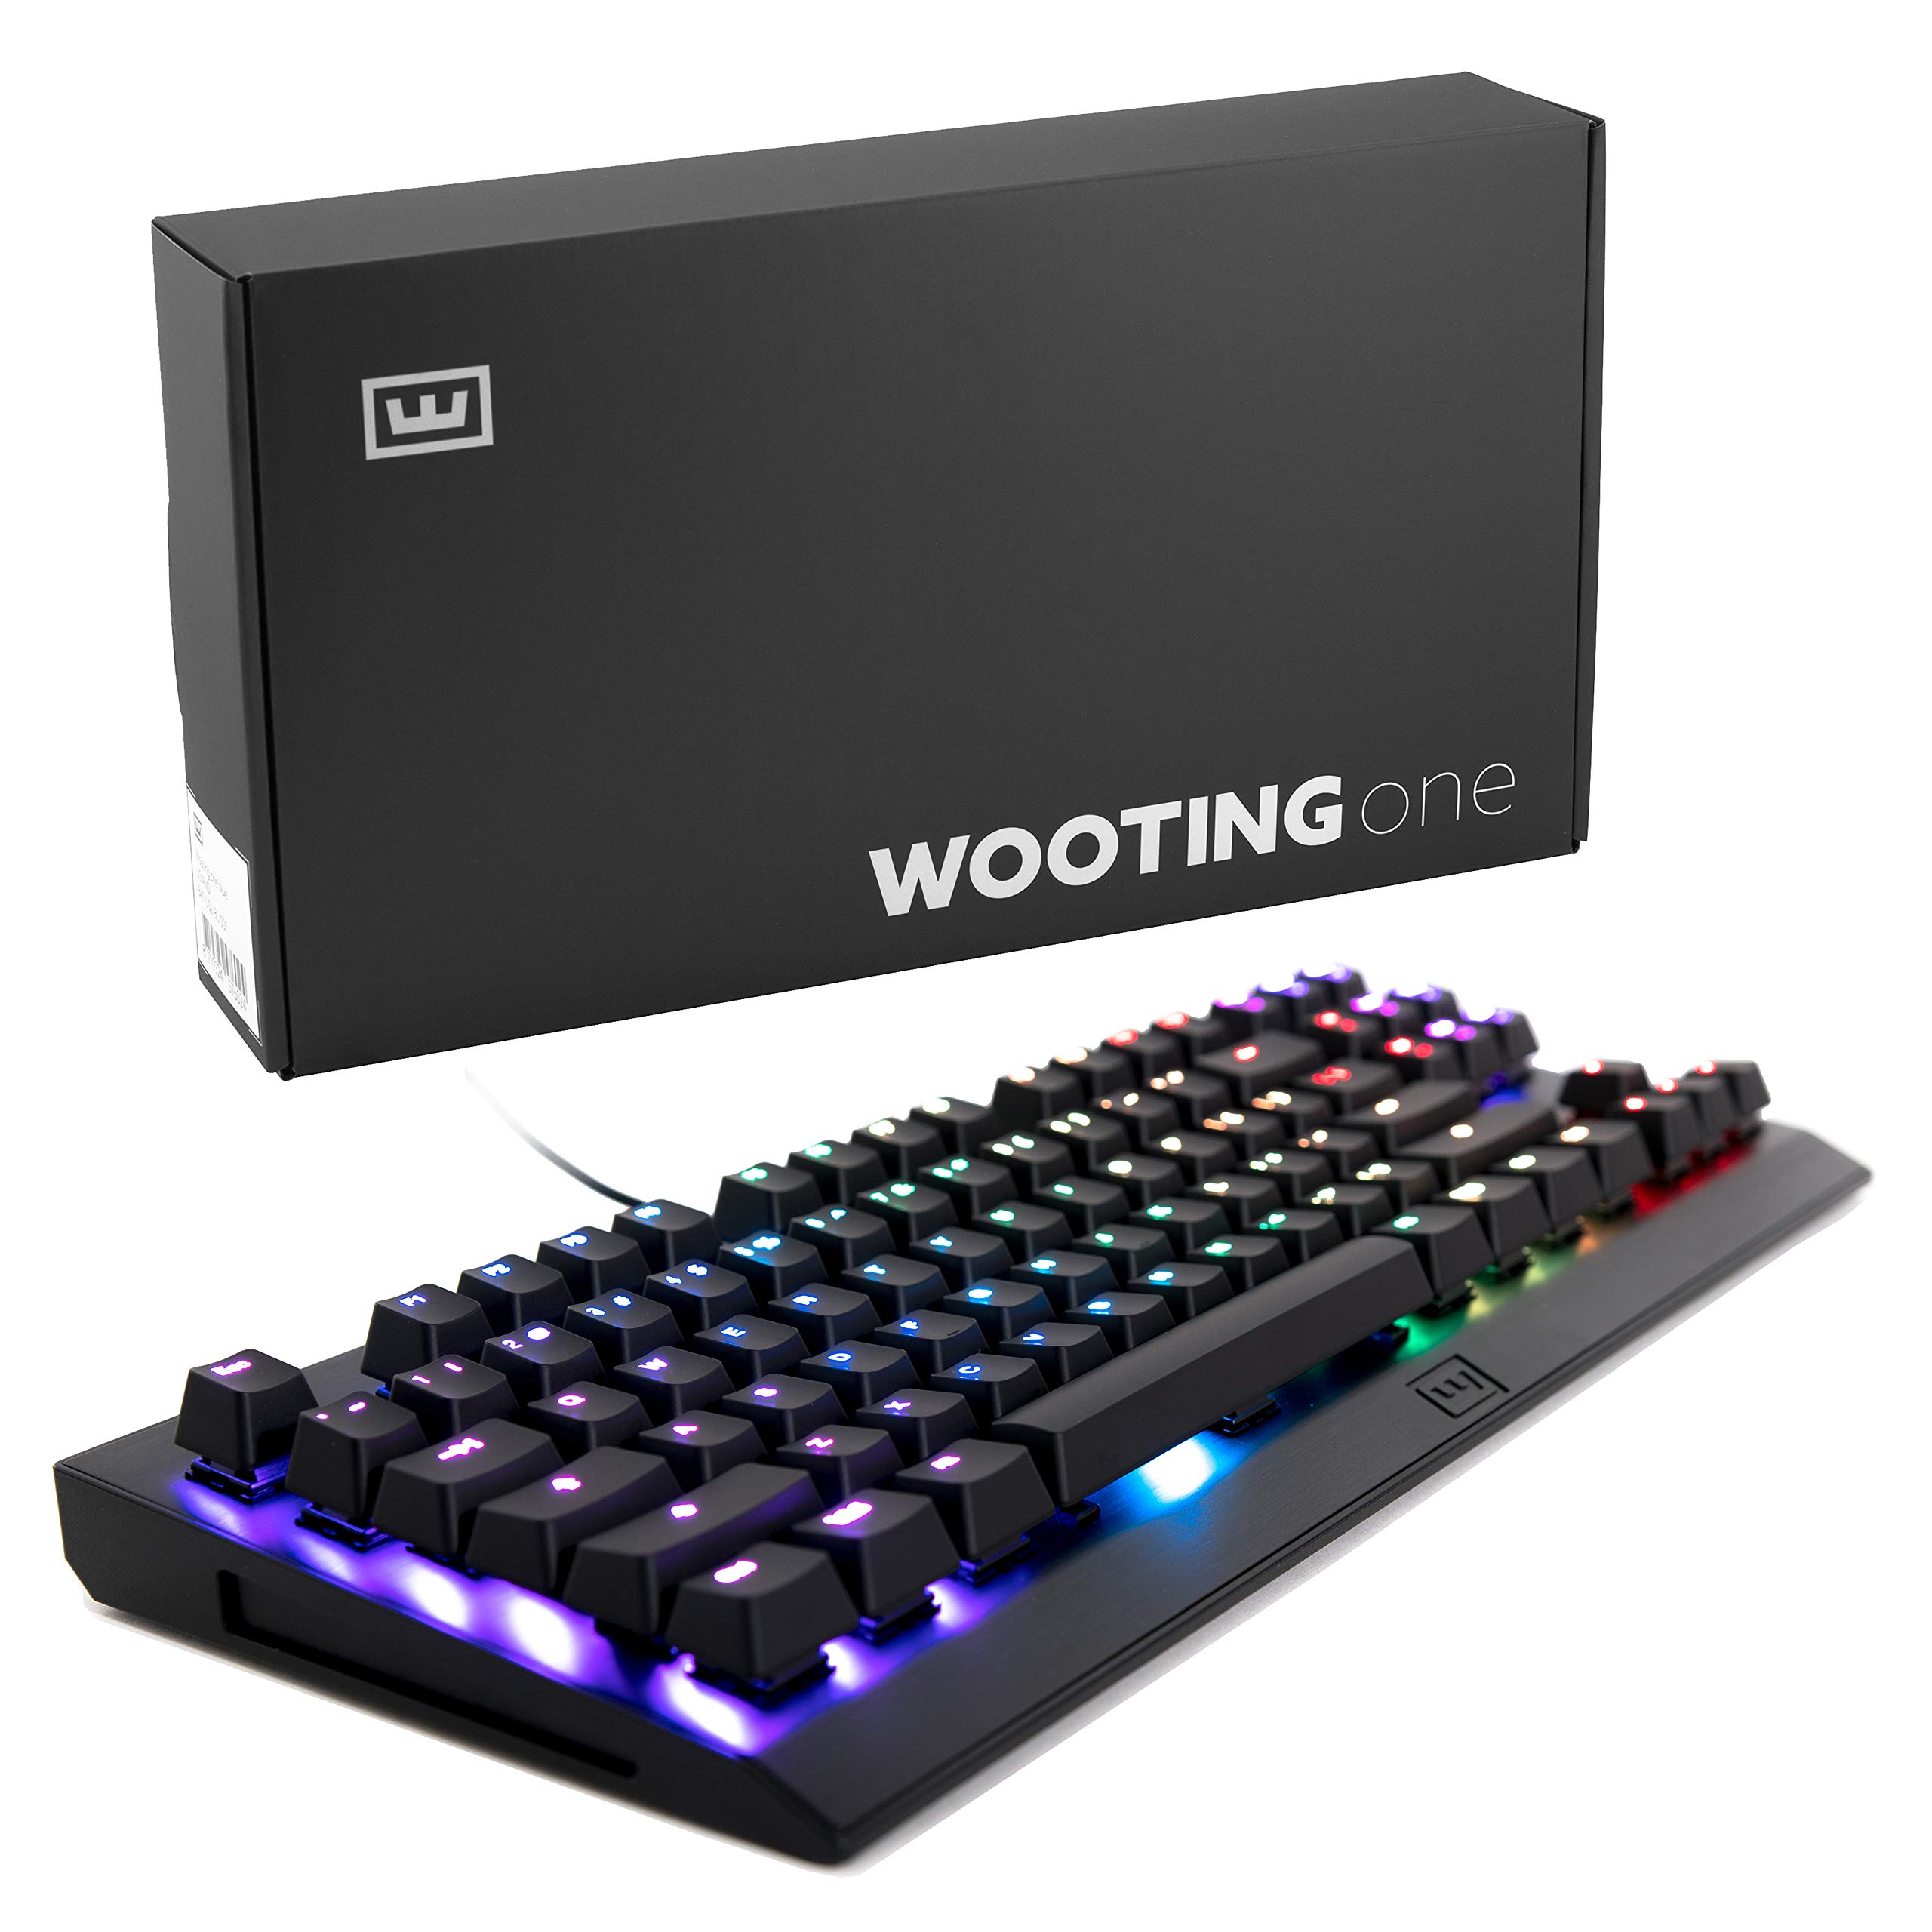 Teclado Mecanico : Wooting One Clicky¿¿¿55¿¿¿ Blue Analog Rg